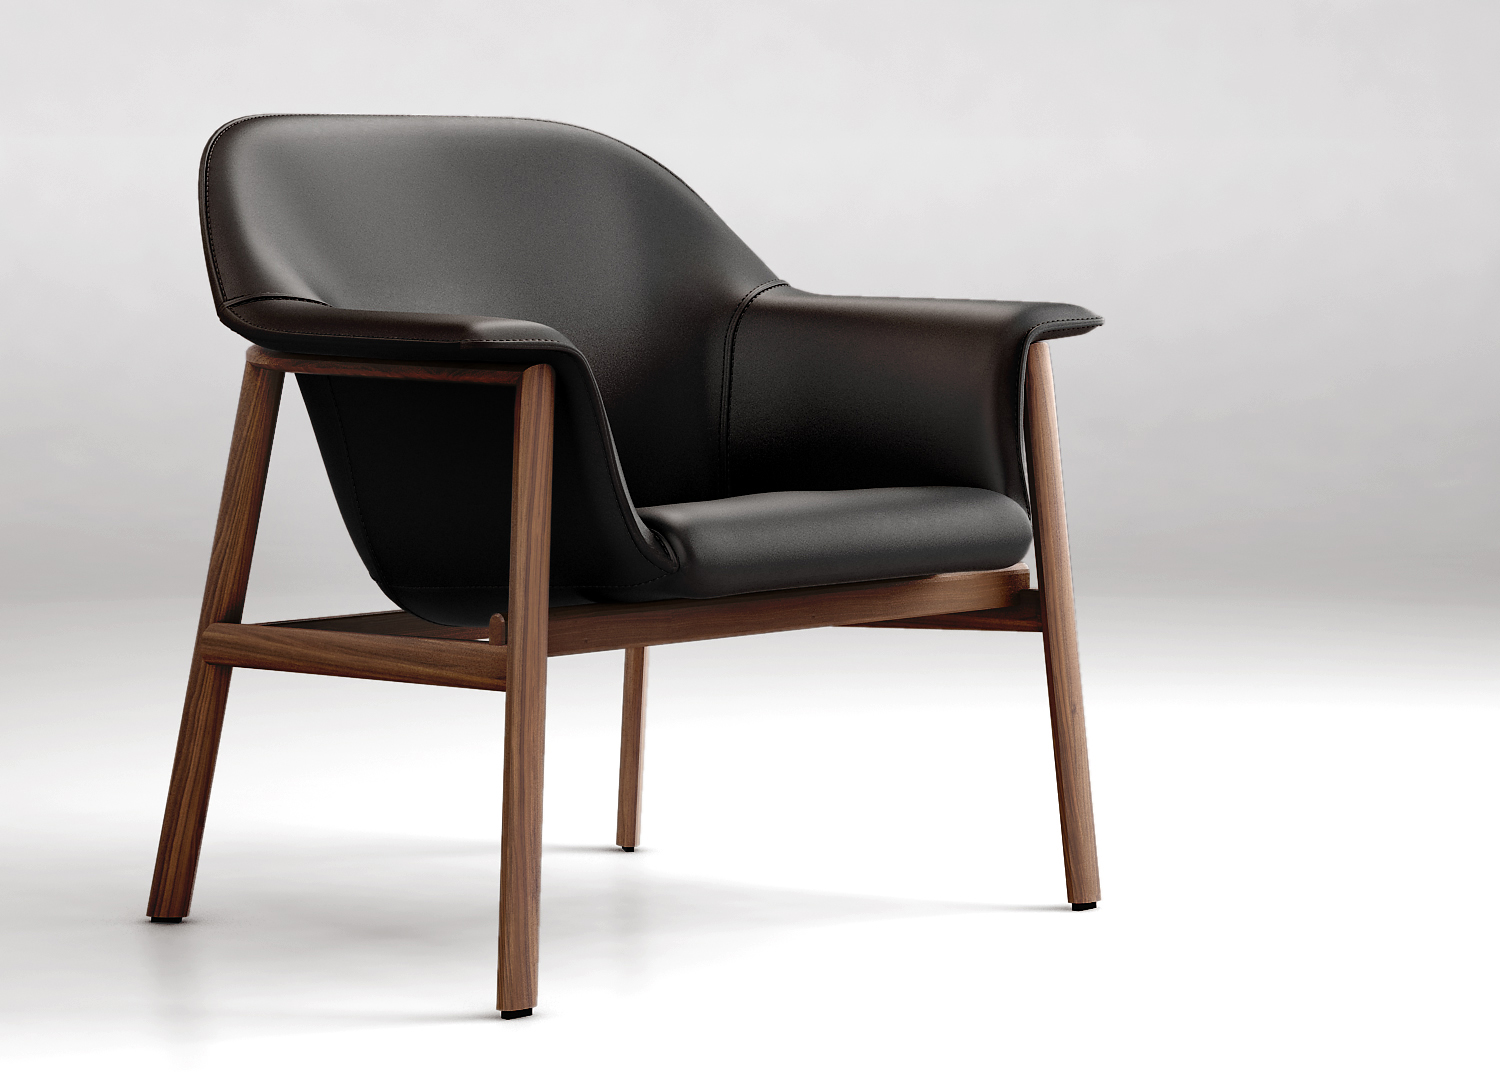 Image result for armchair models